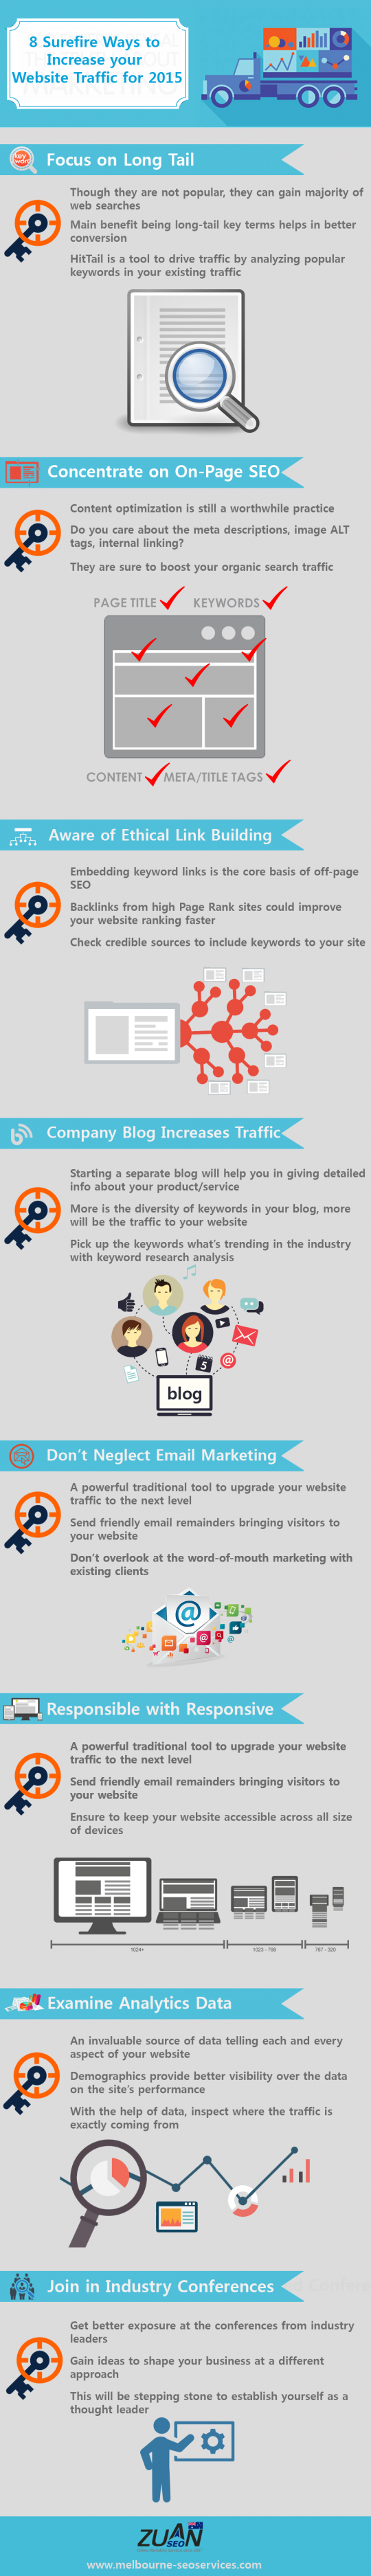 8 Surefire Ways to Increase your Website Traffic for 2015